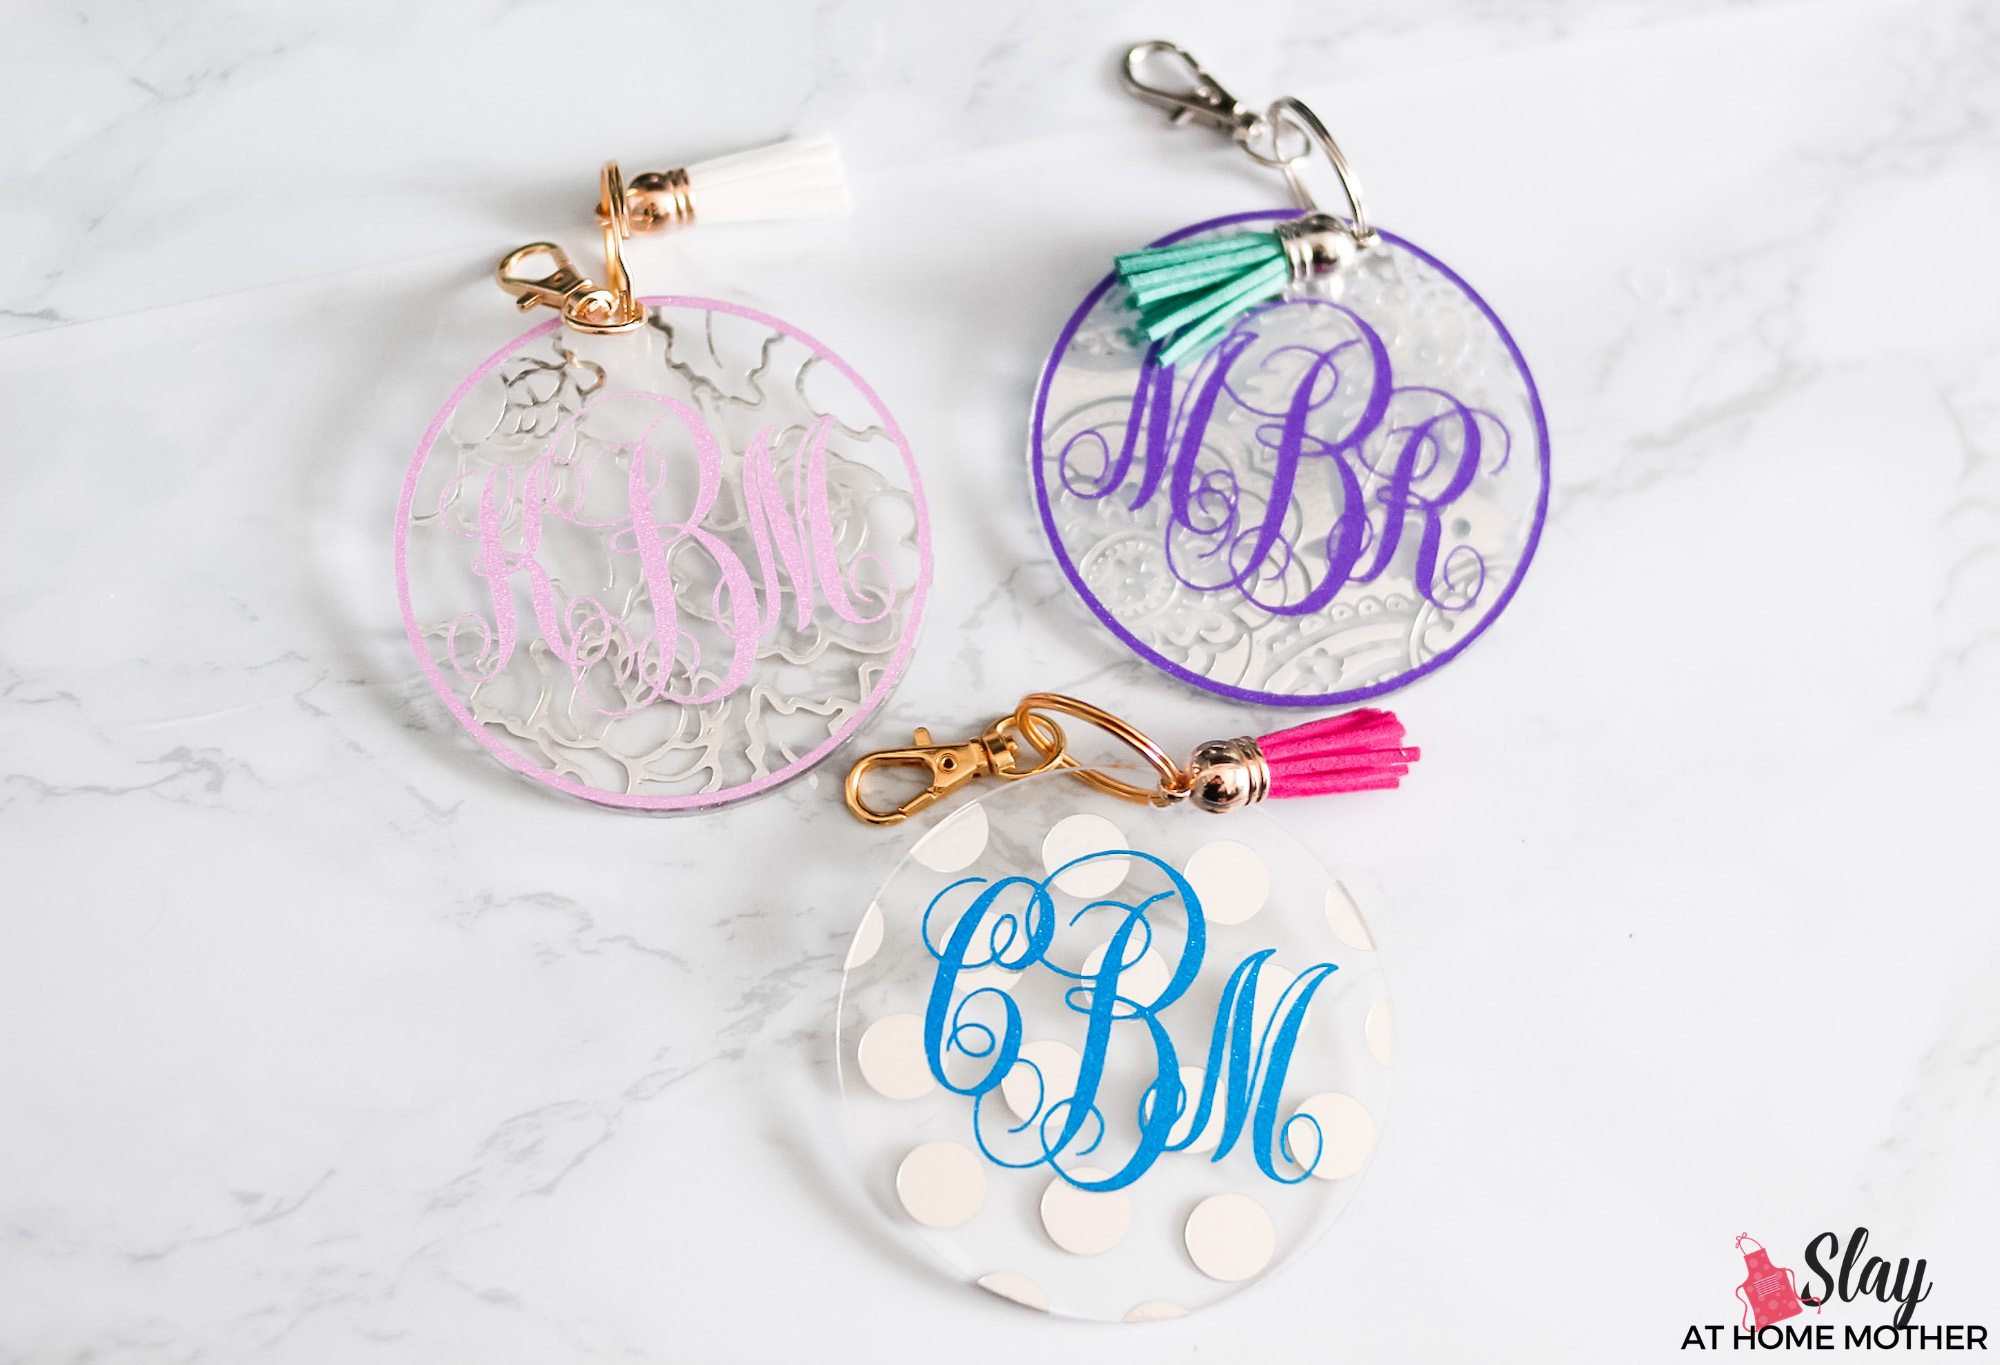 finished monogram keychains with silver and gold hardware and tassels